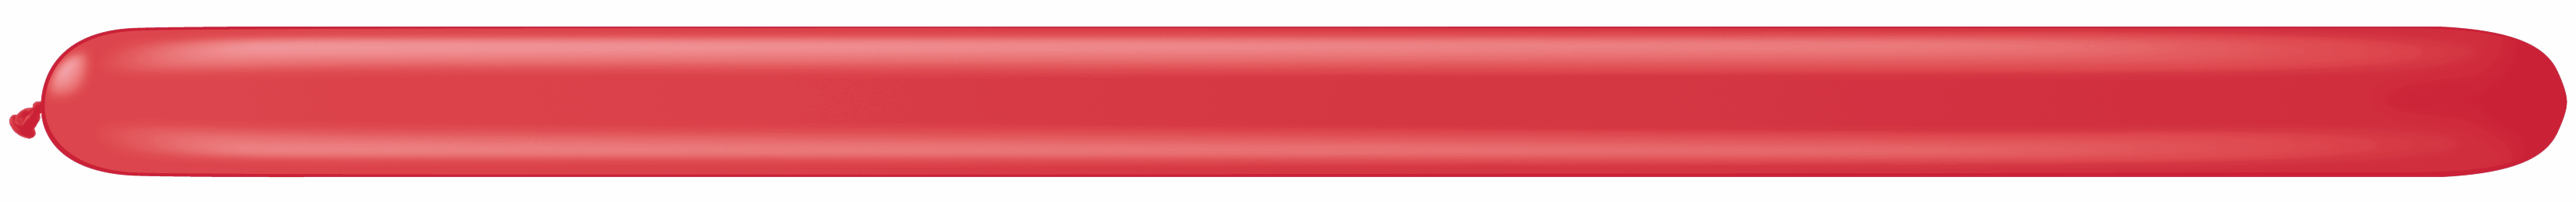 160Q Red Specialty Entertainer Balloons (100 Count)